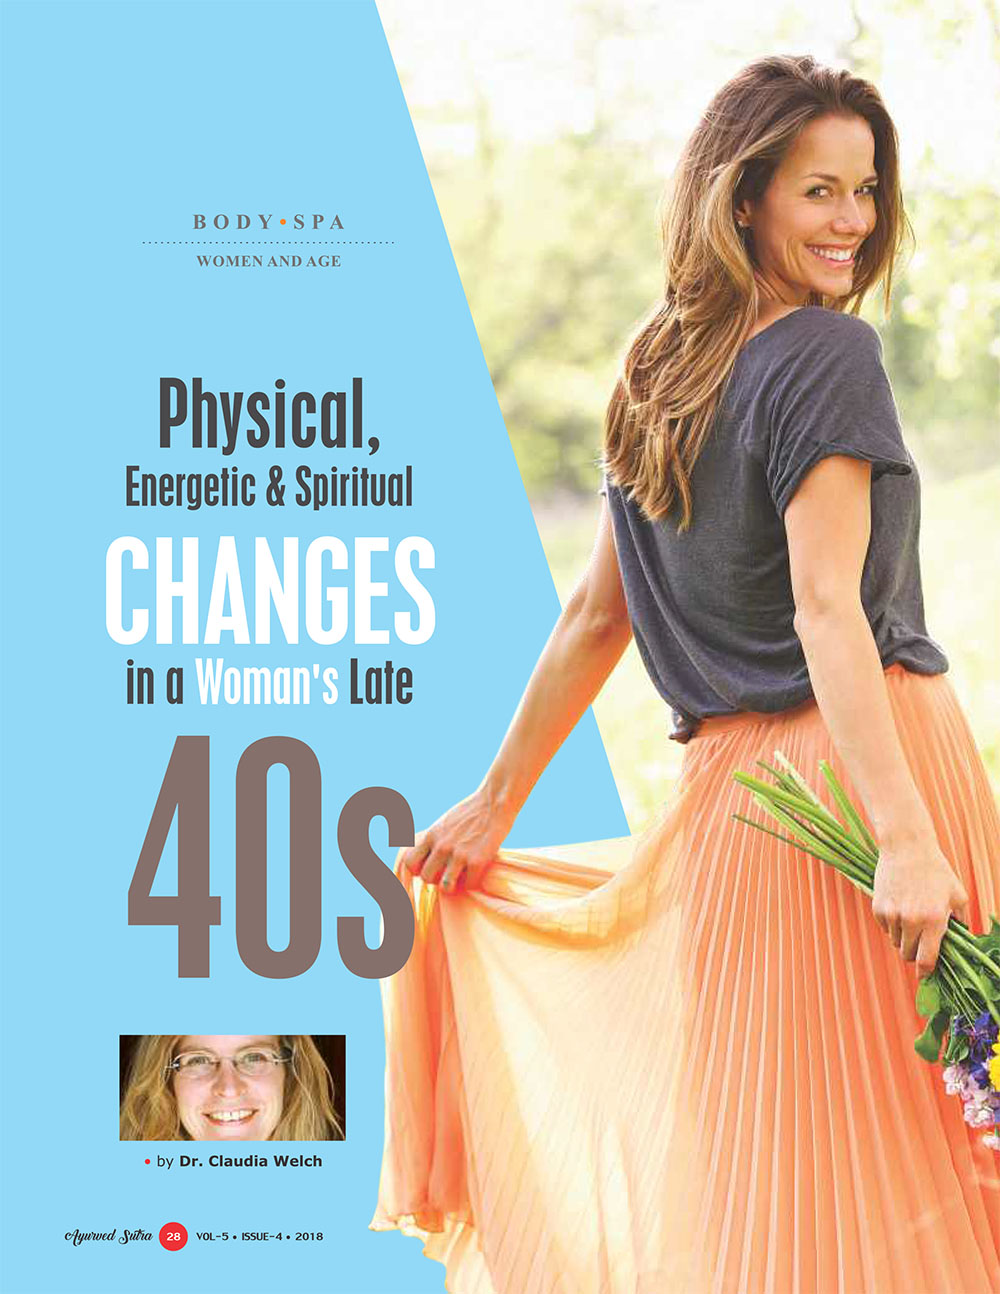 Ayurvedsutra Vol 05 issue 04 30 - Physical, Energetic & Spiritual Changes in a Woman's Late 40s